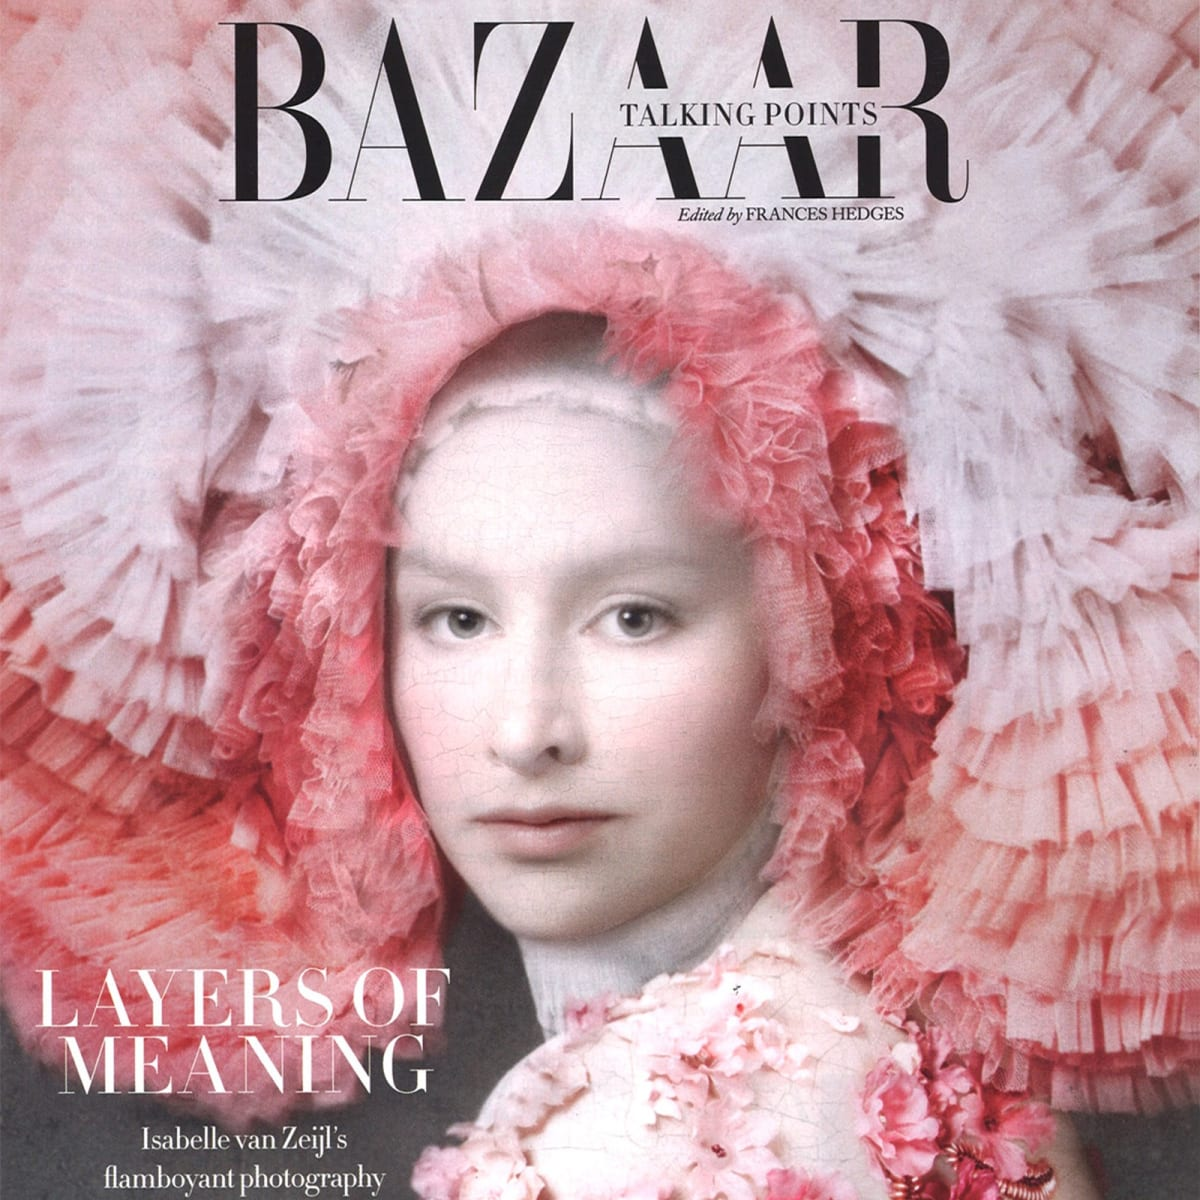 Harper's Bazaar Talking Points